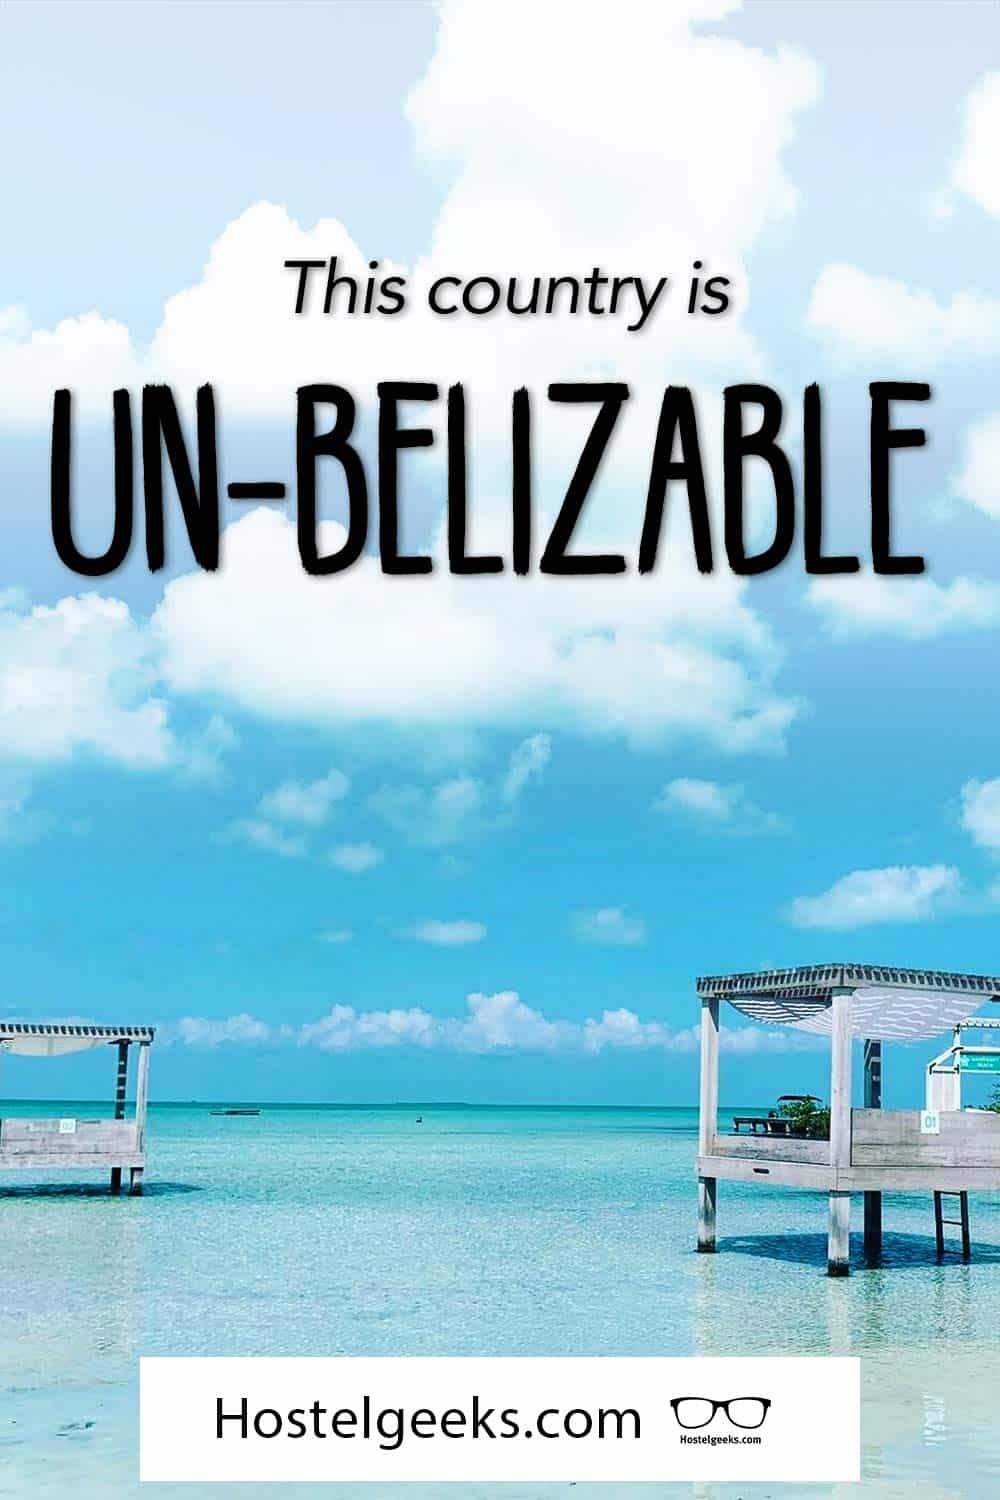 This country is un-belizable.